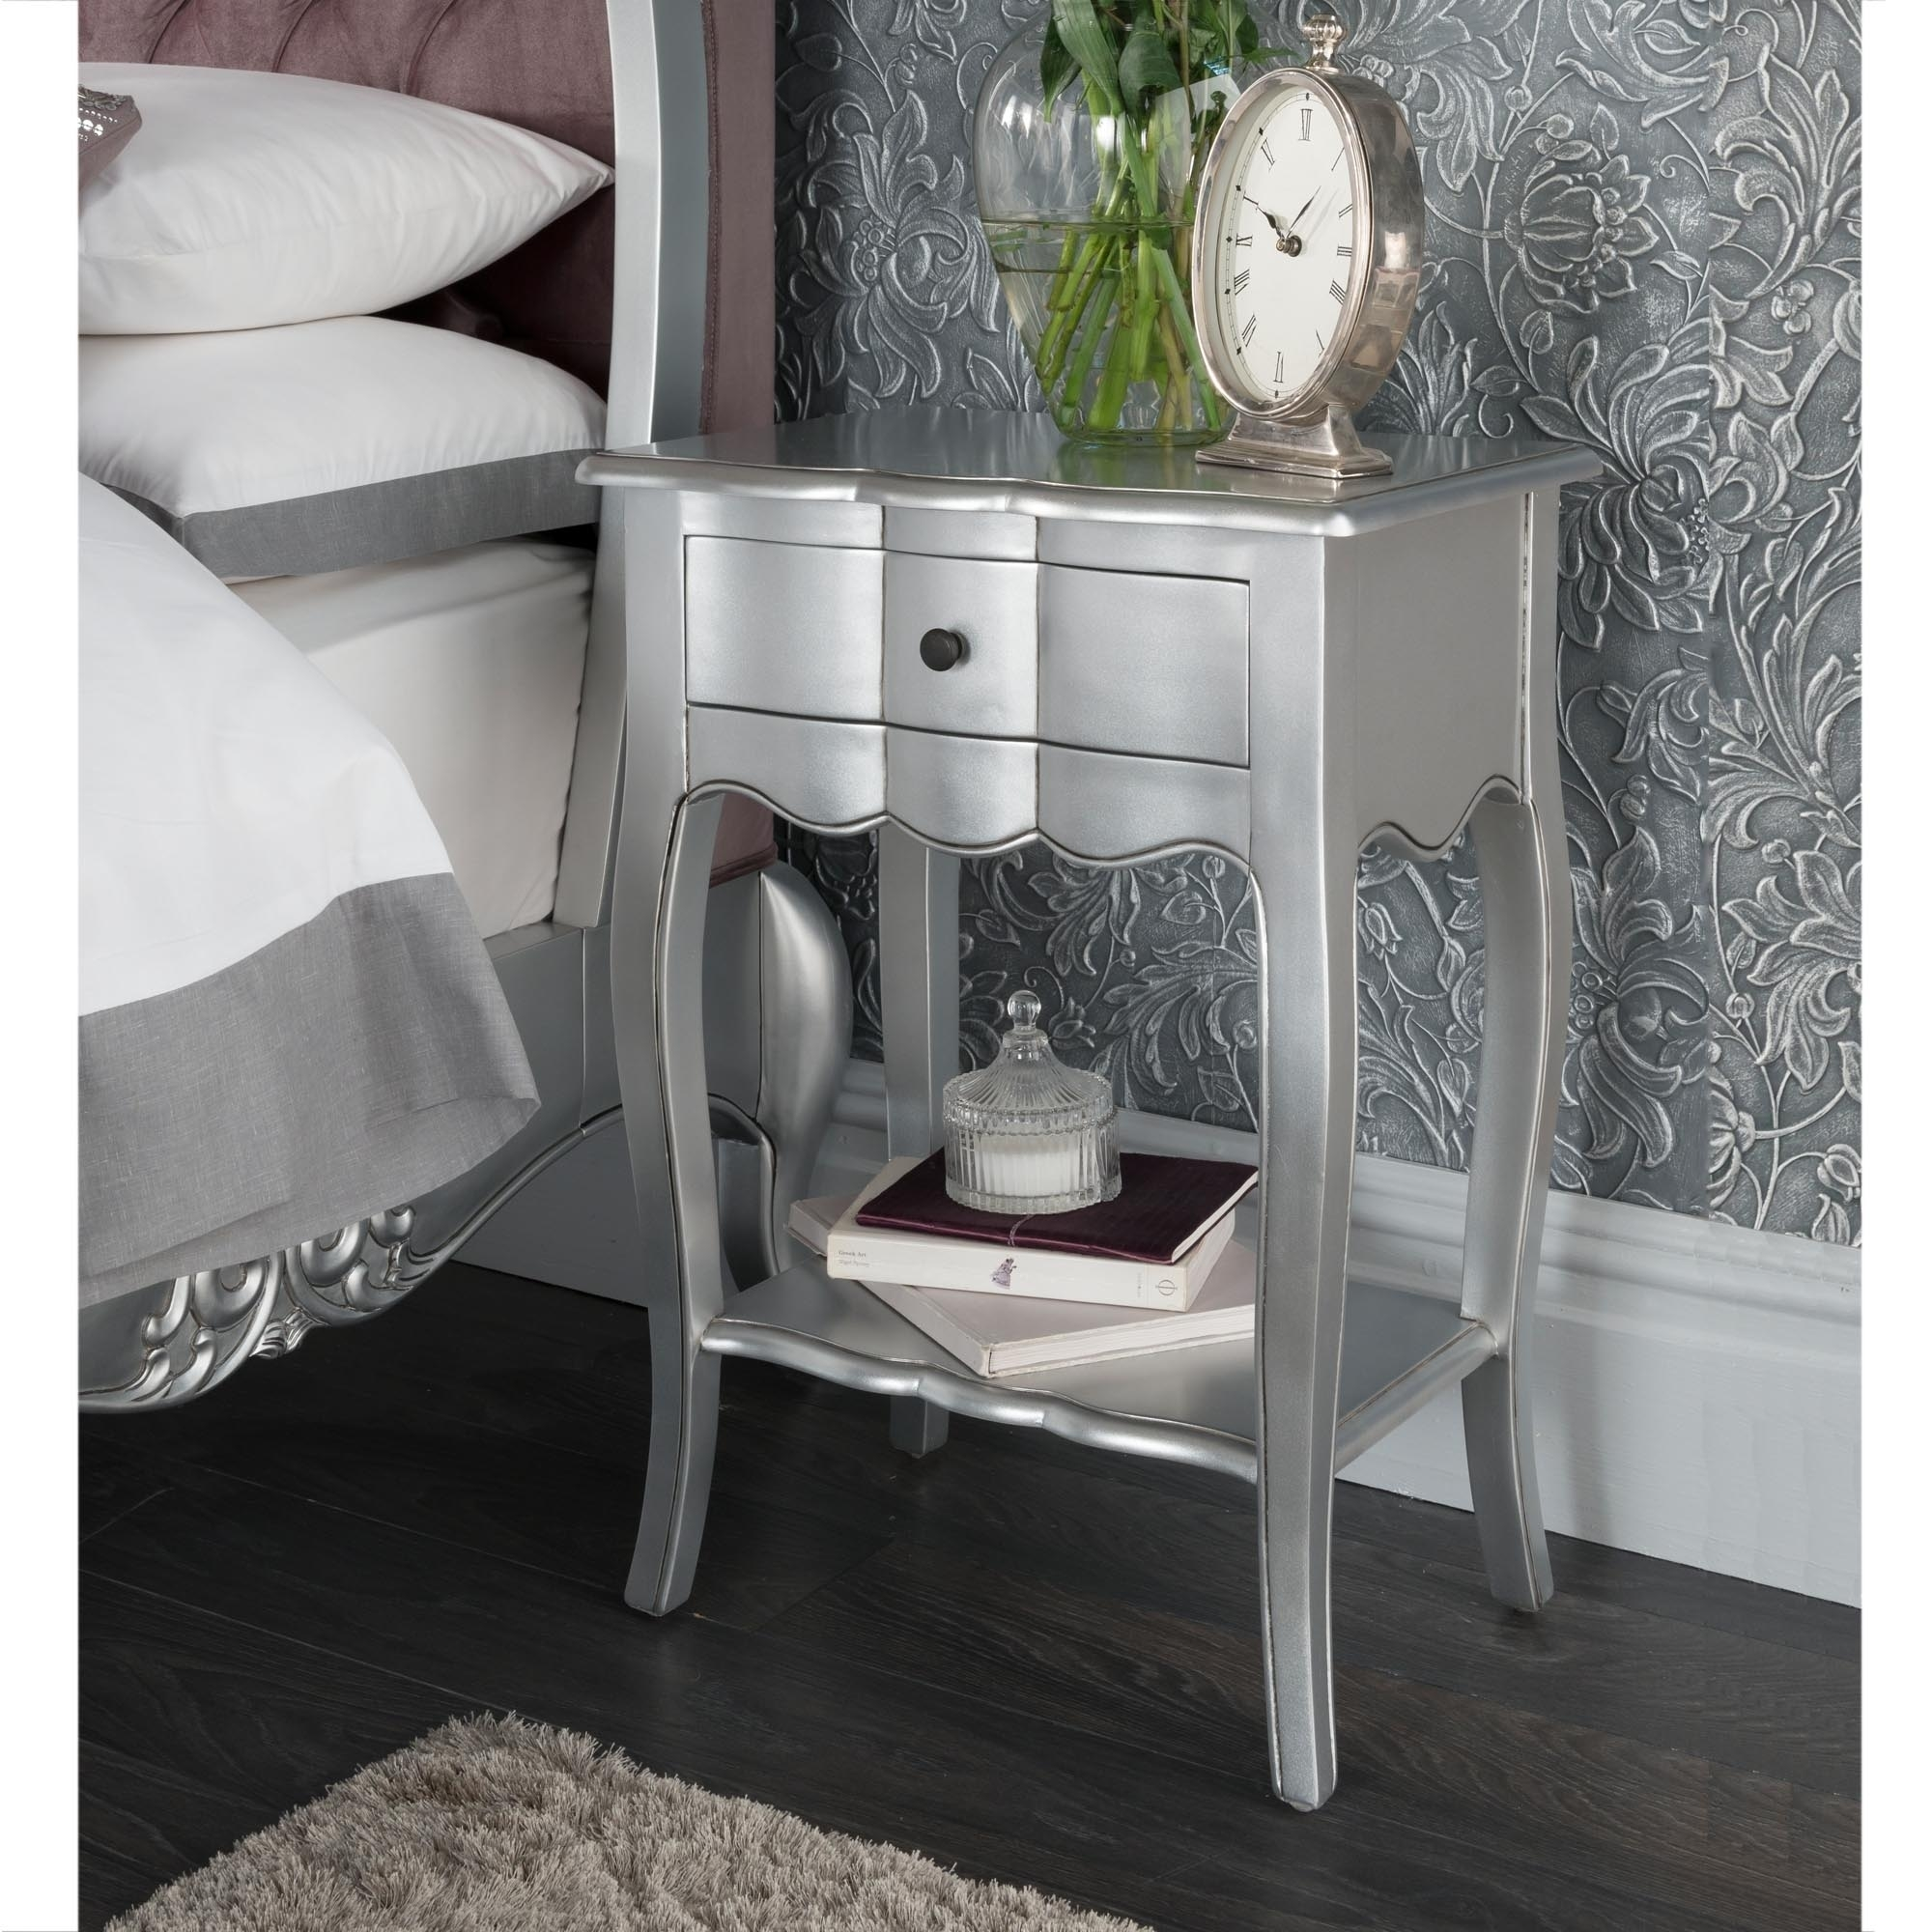 Estelle antique french style bedside table shabby chic estelle silver antique french style bedside table watchthetrailerfo